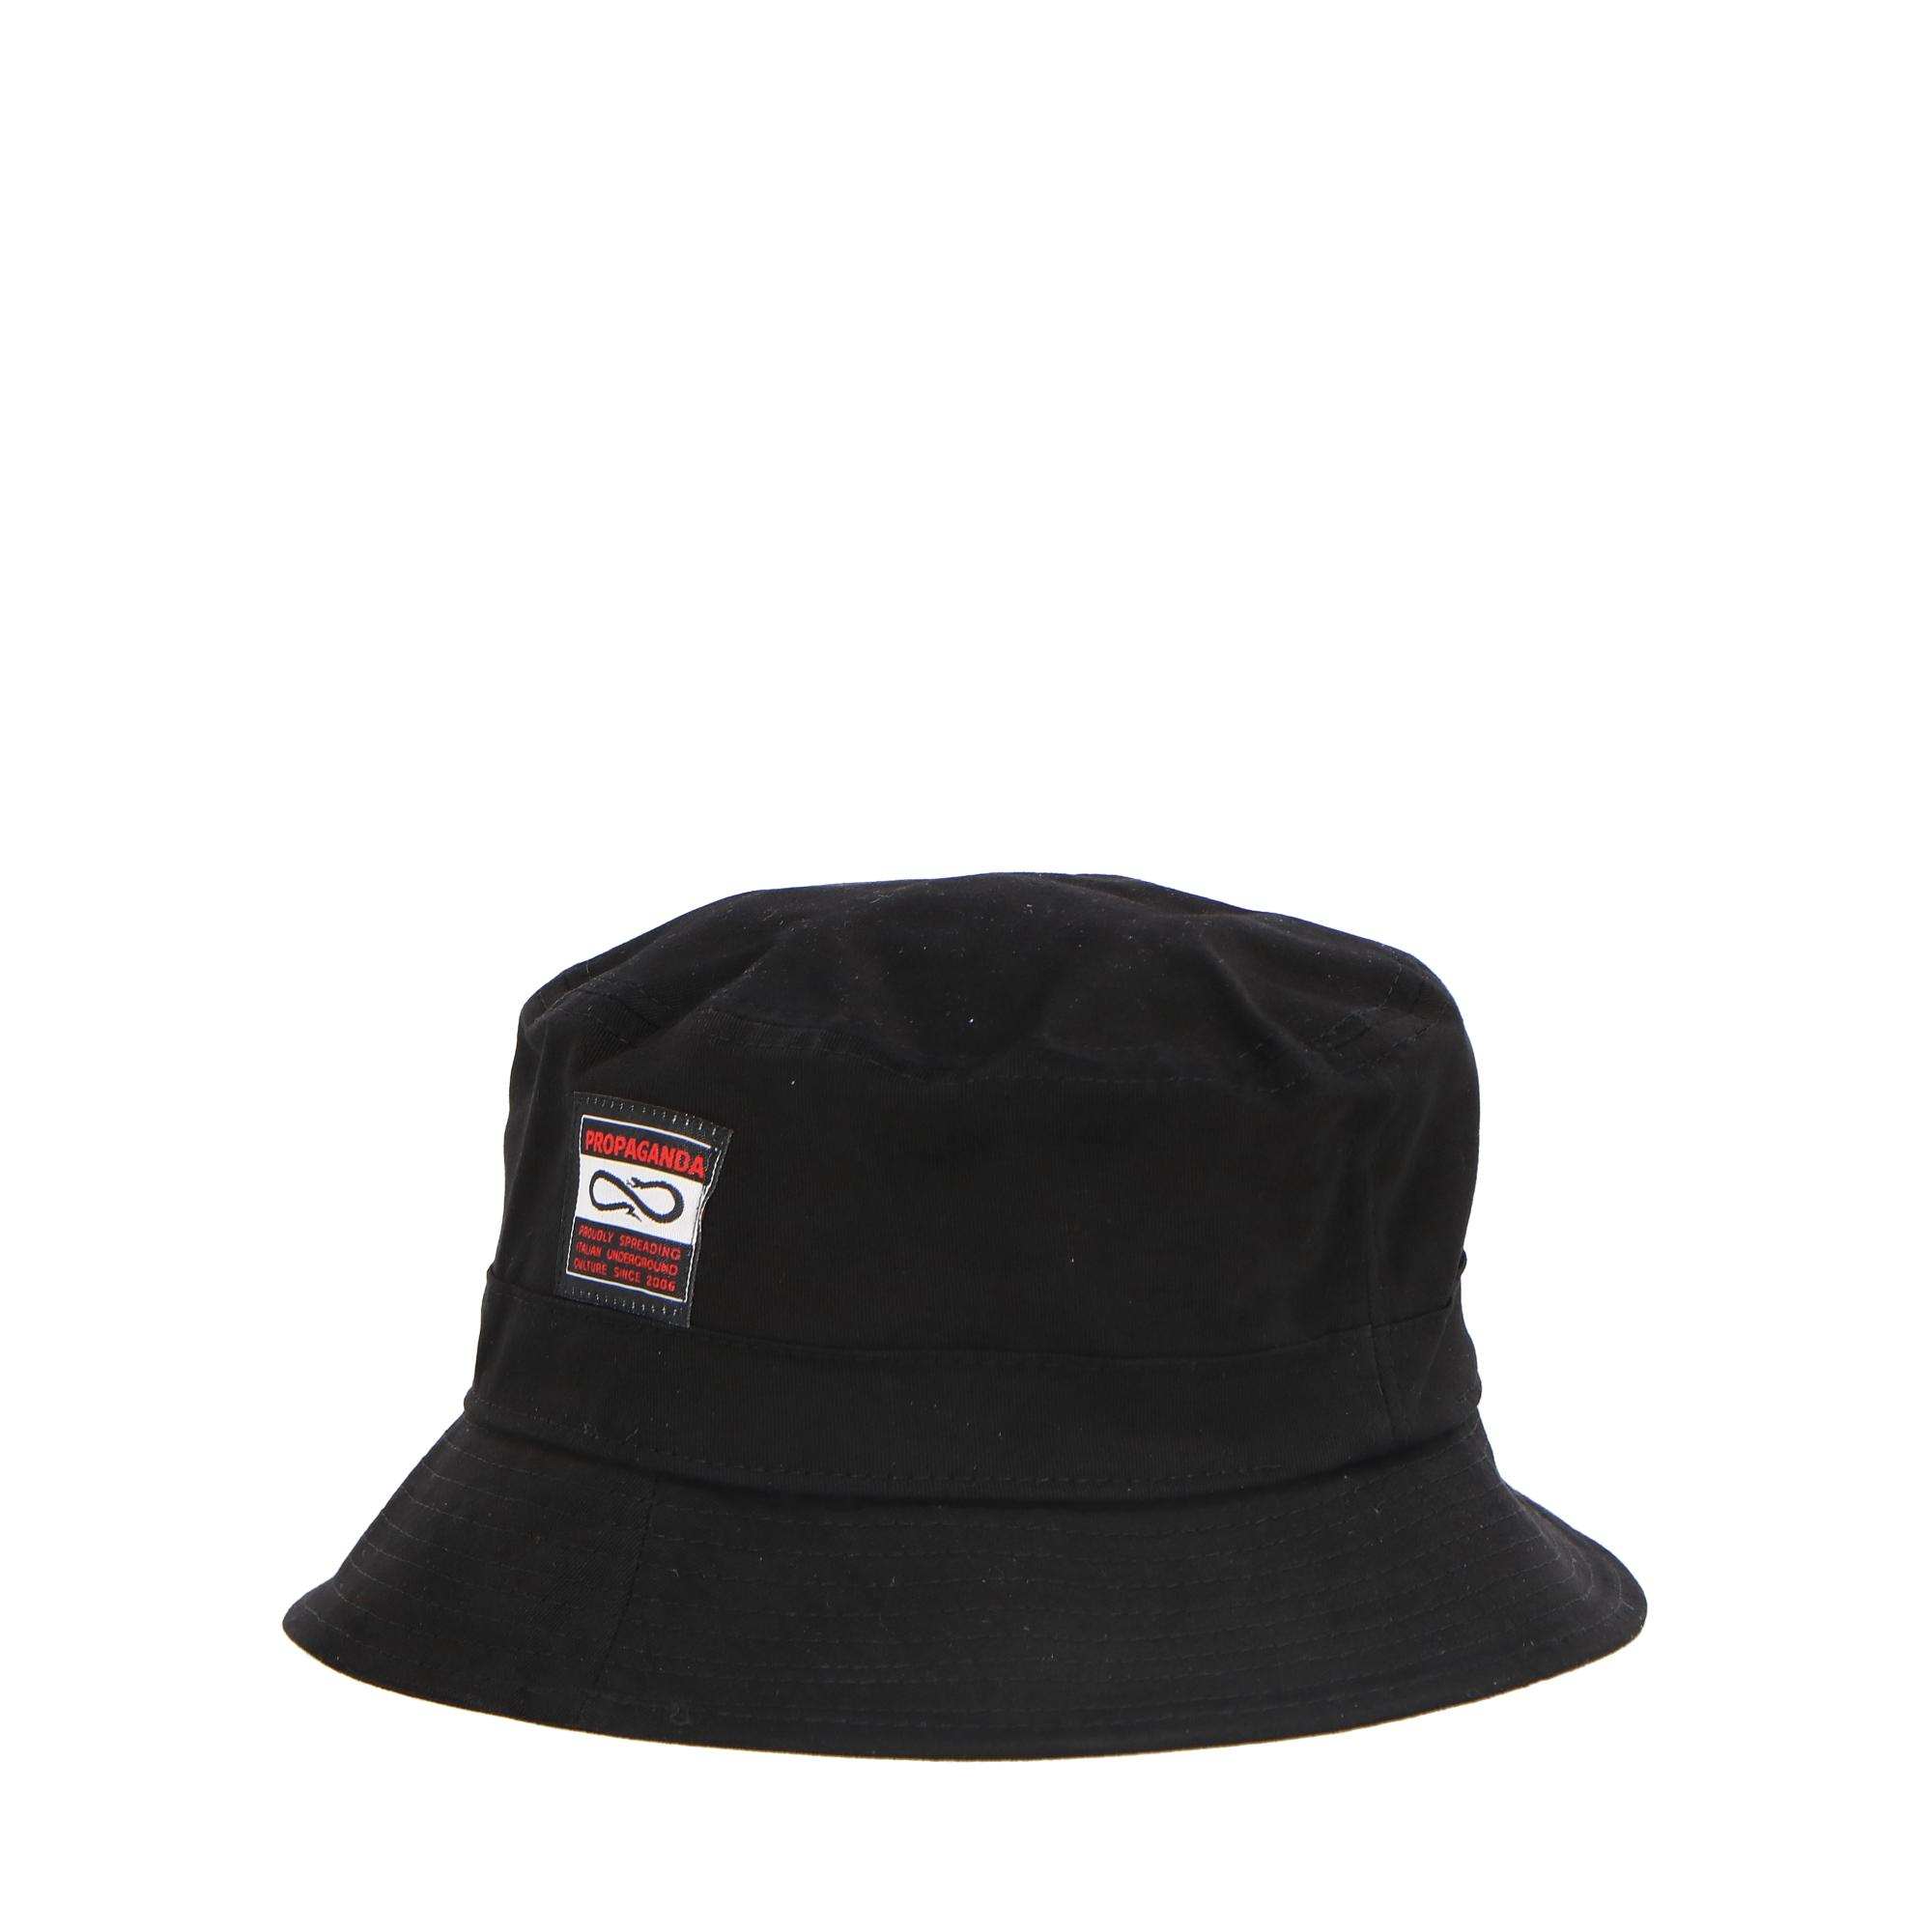 Propaganda Blank Bucket Hat Black